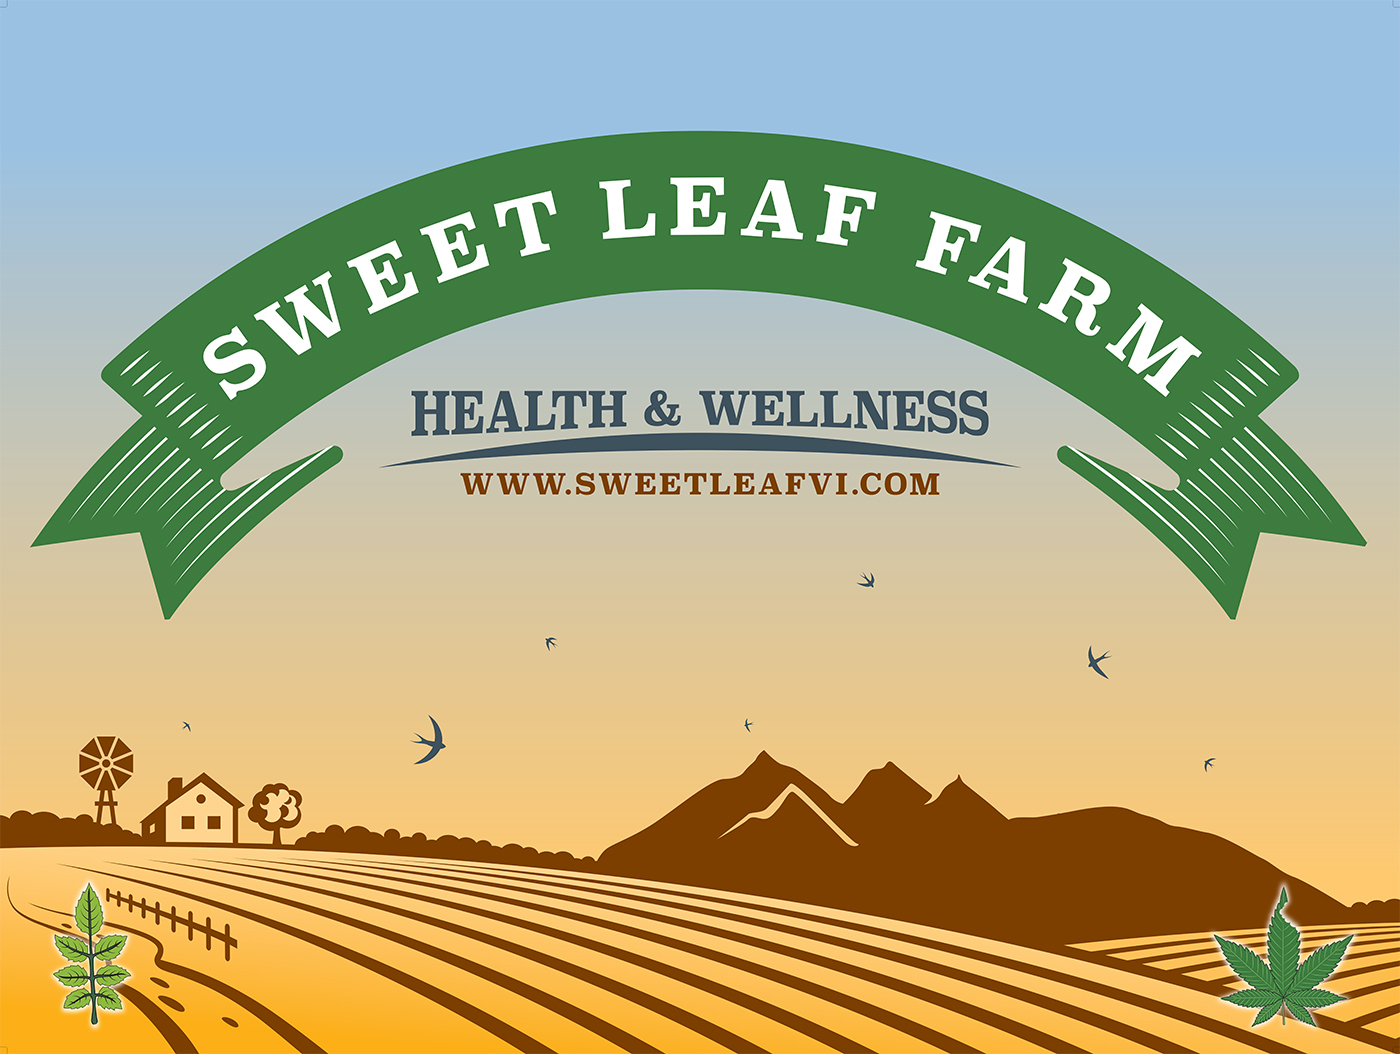 88539_Sweet-Leaf-Farm_060817-1